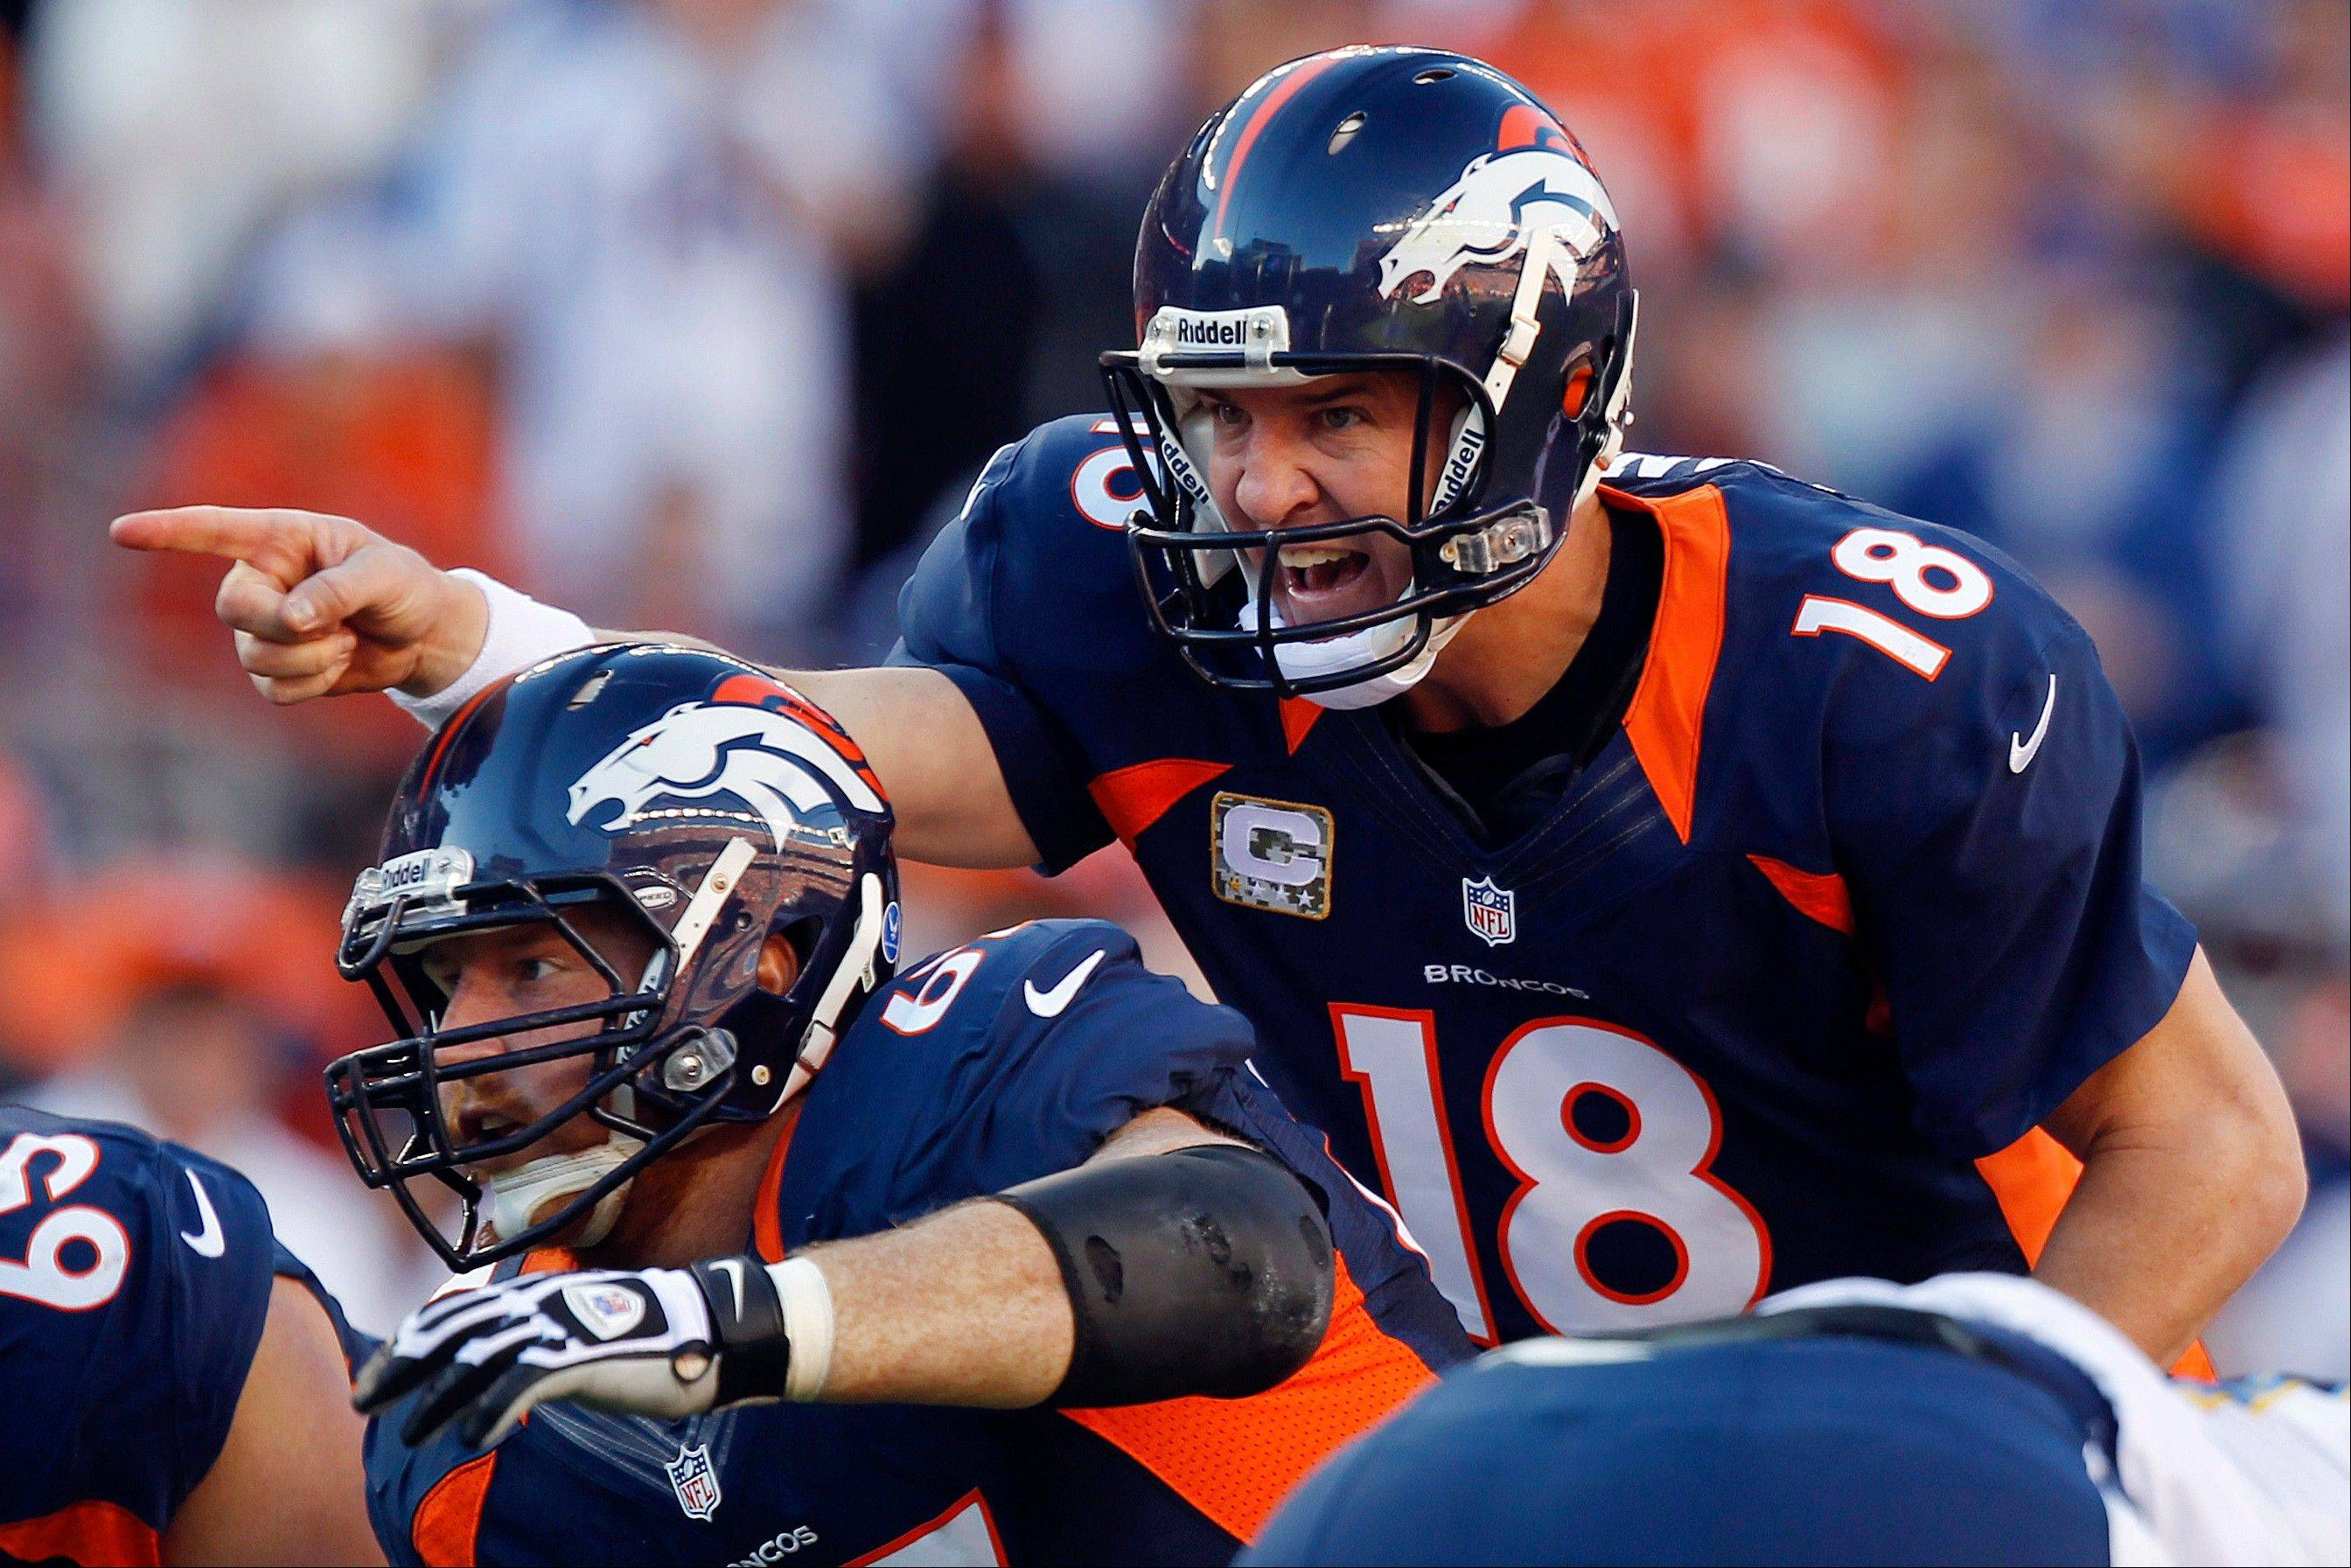 Broncos quarterback Peyton Manning took his new team to the playoffs in his first season in Denver.